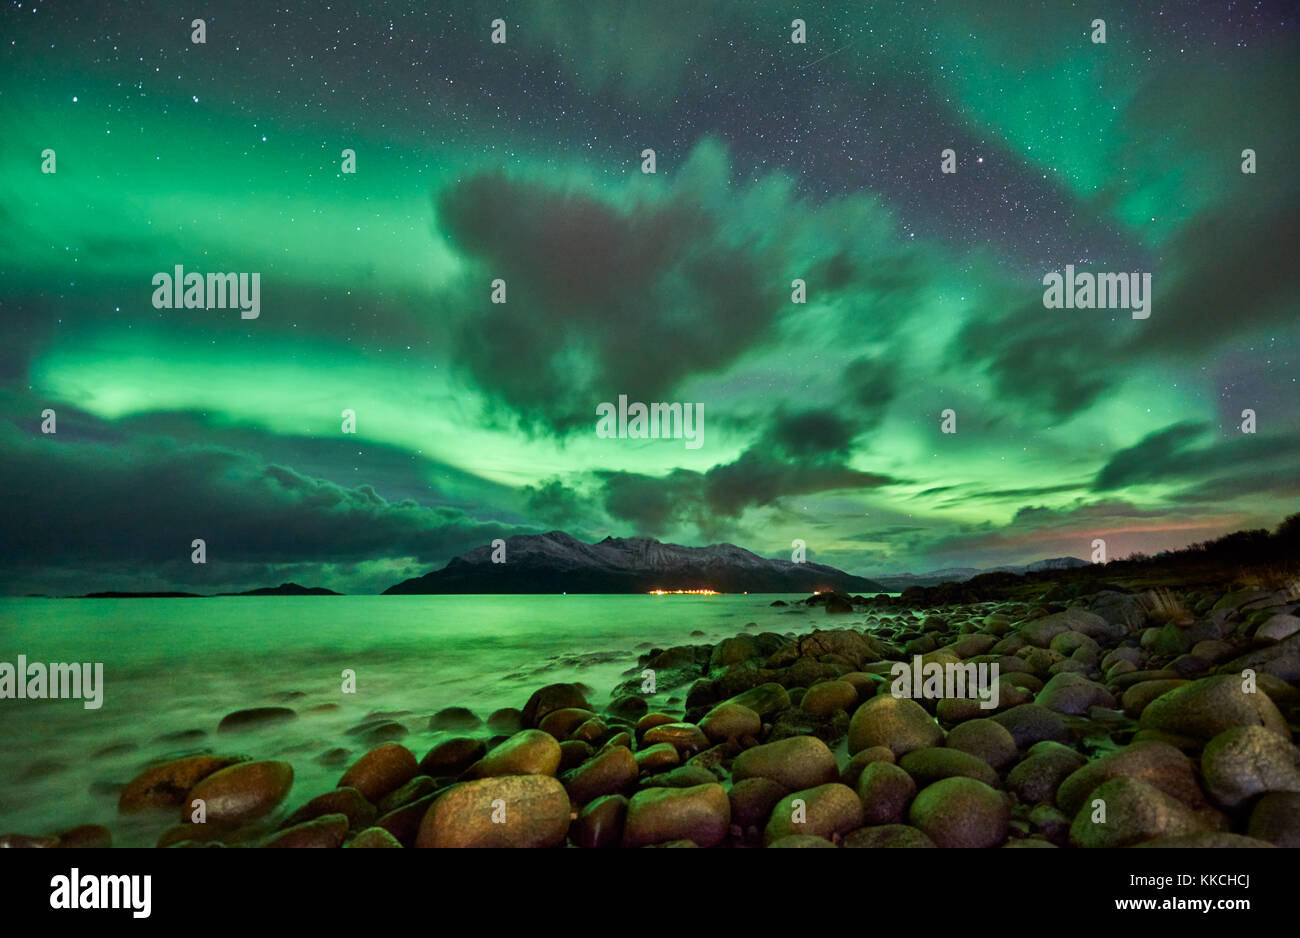 Aurora Borealis or northern lights over winter landscape in fjord of Kaldfjord, Tromvik, Tromso, Troms, Norway, - Stock Image